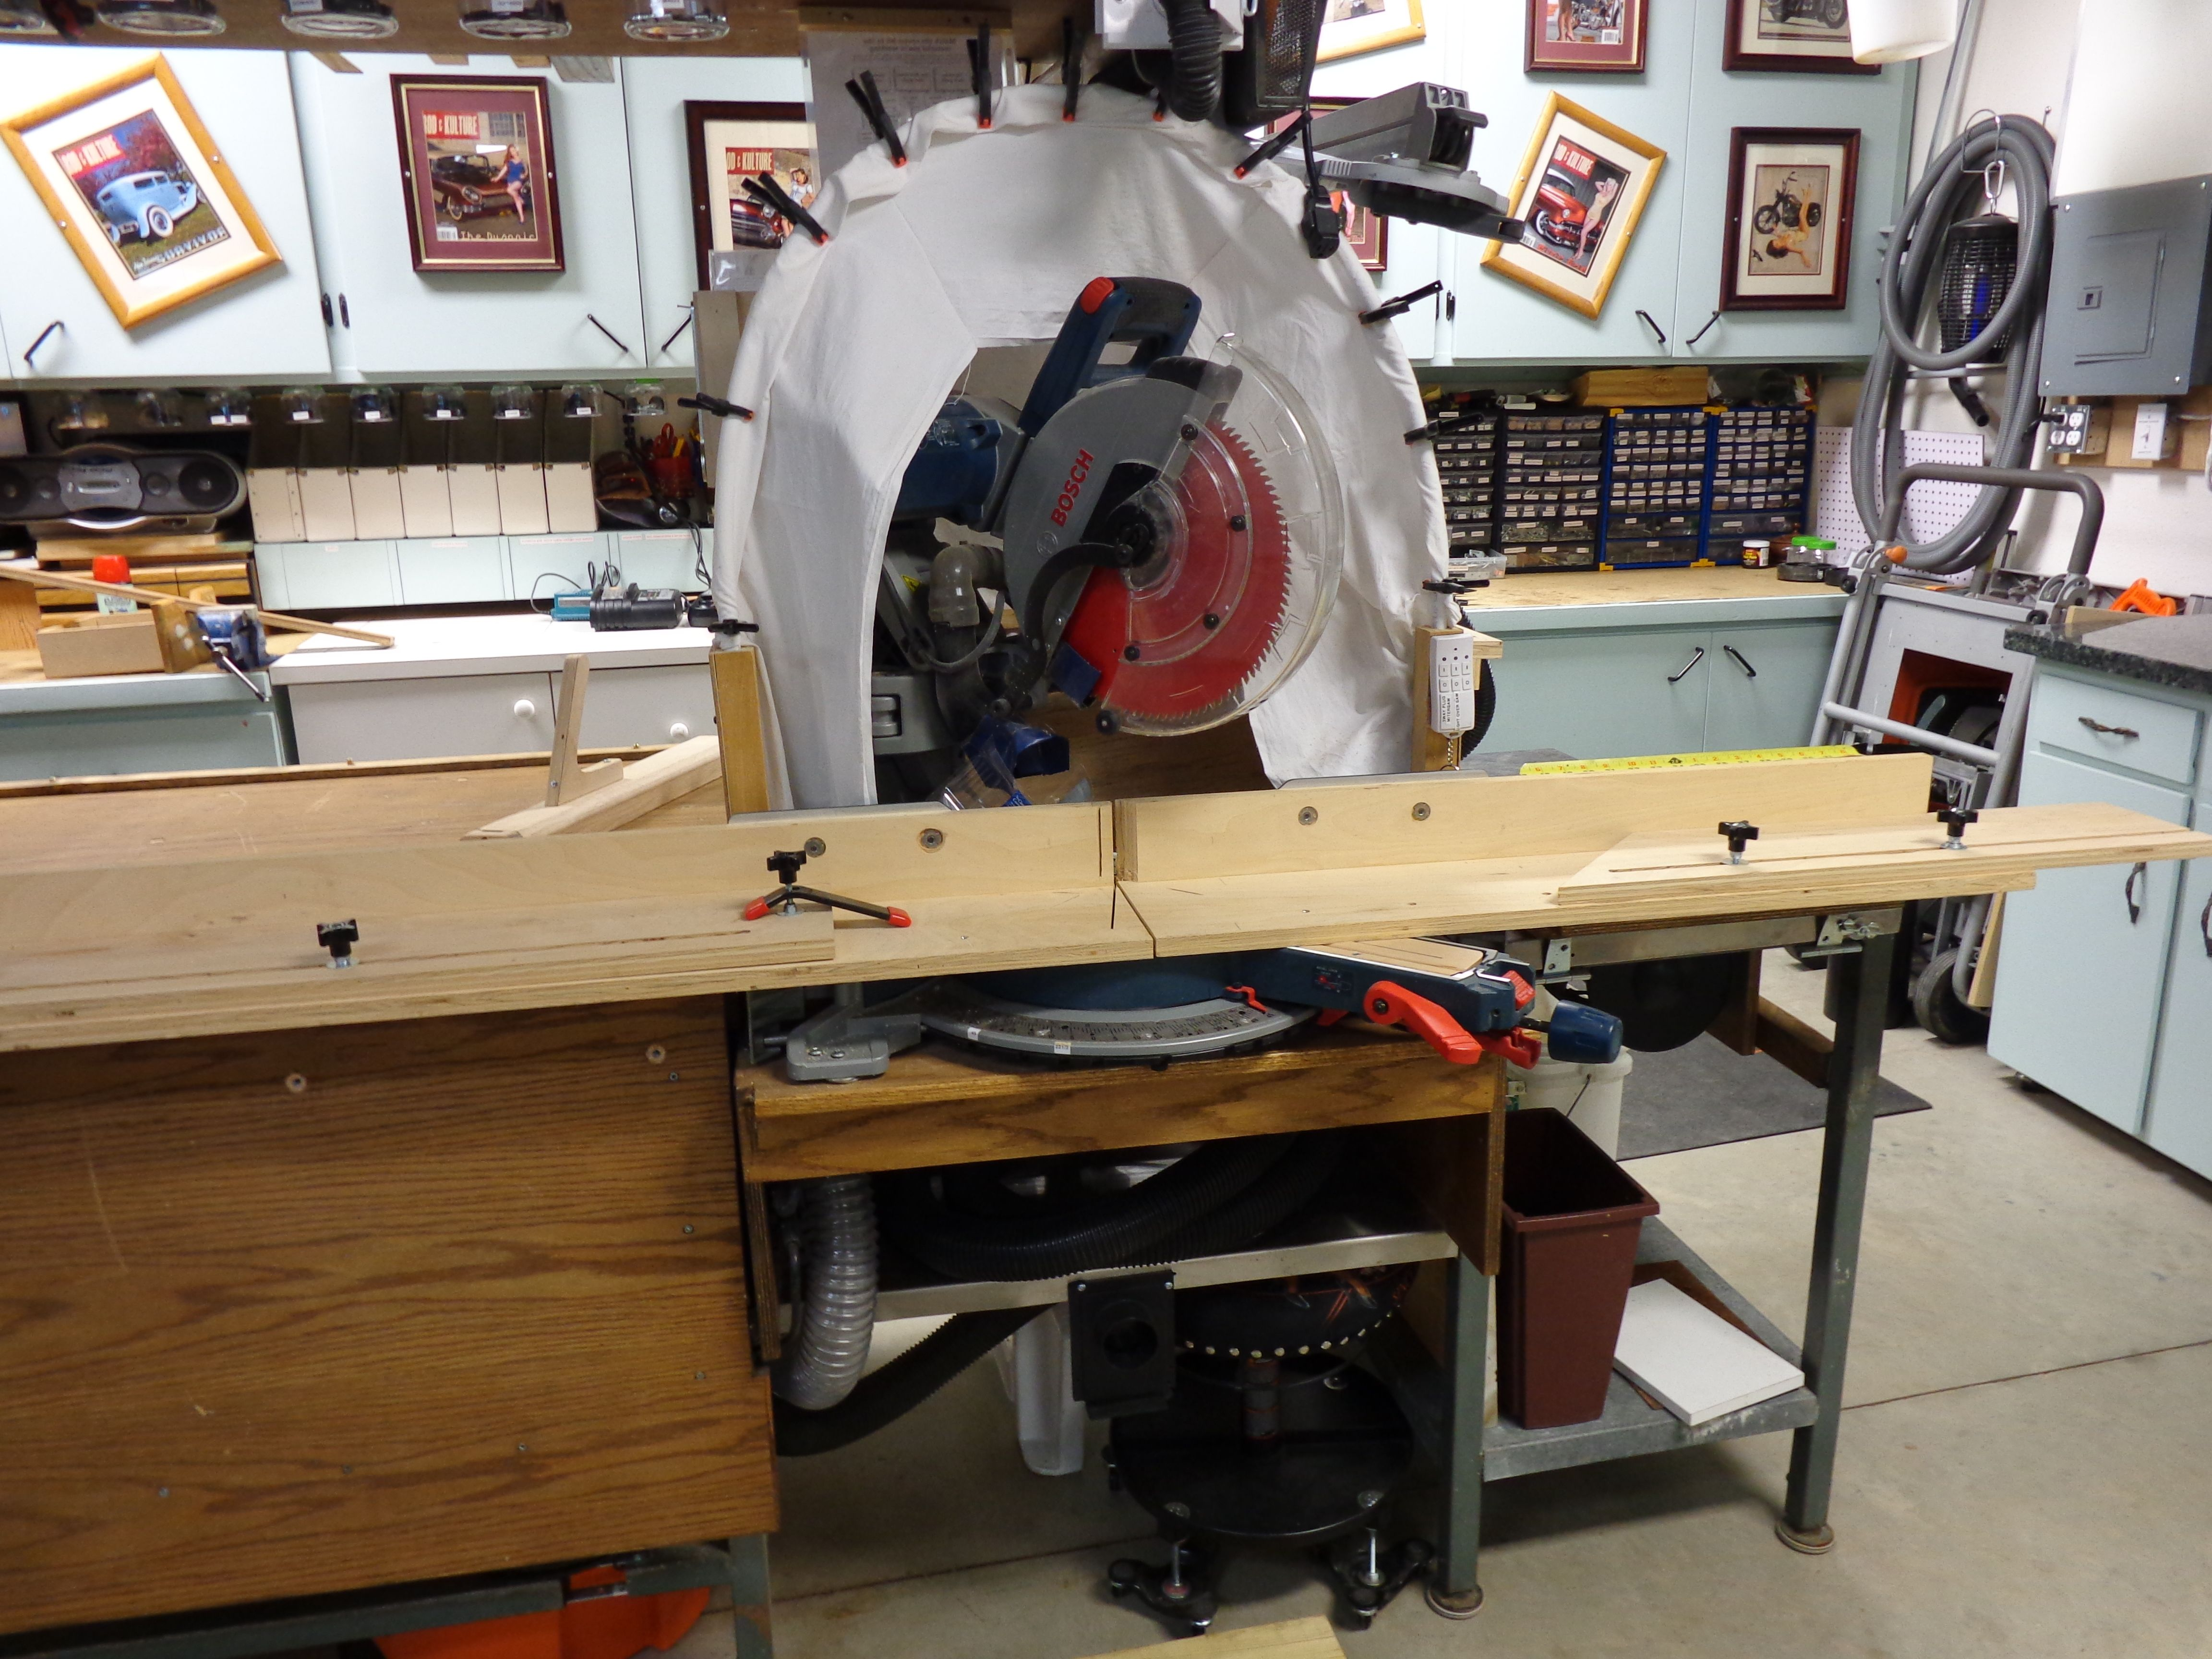 28 Articulating Miter Saw With Dust Collecting Hood